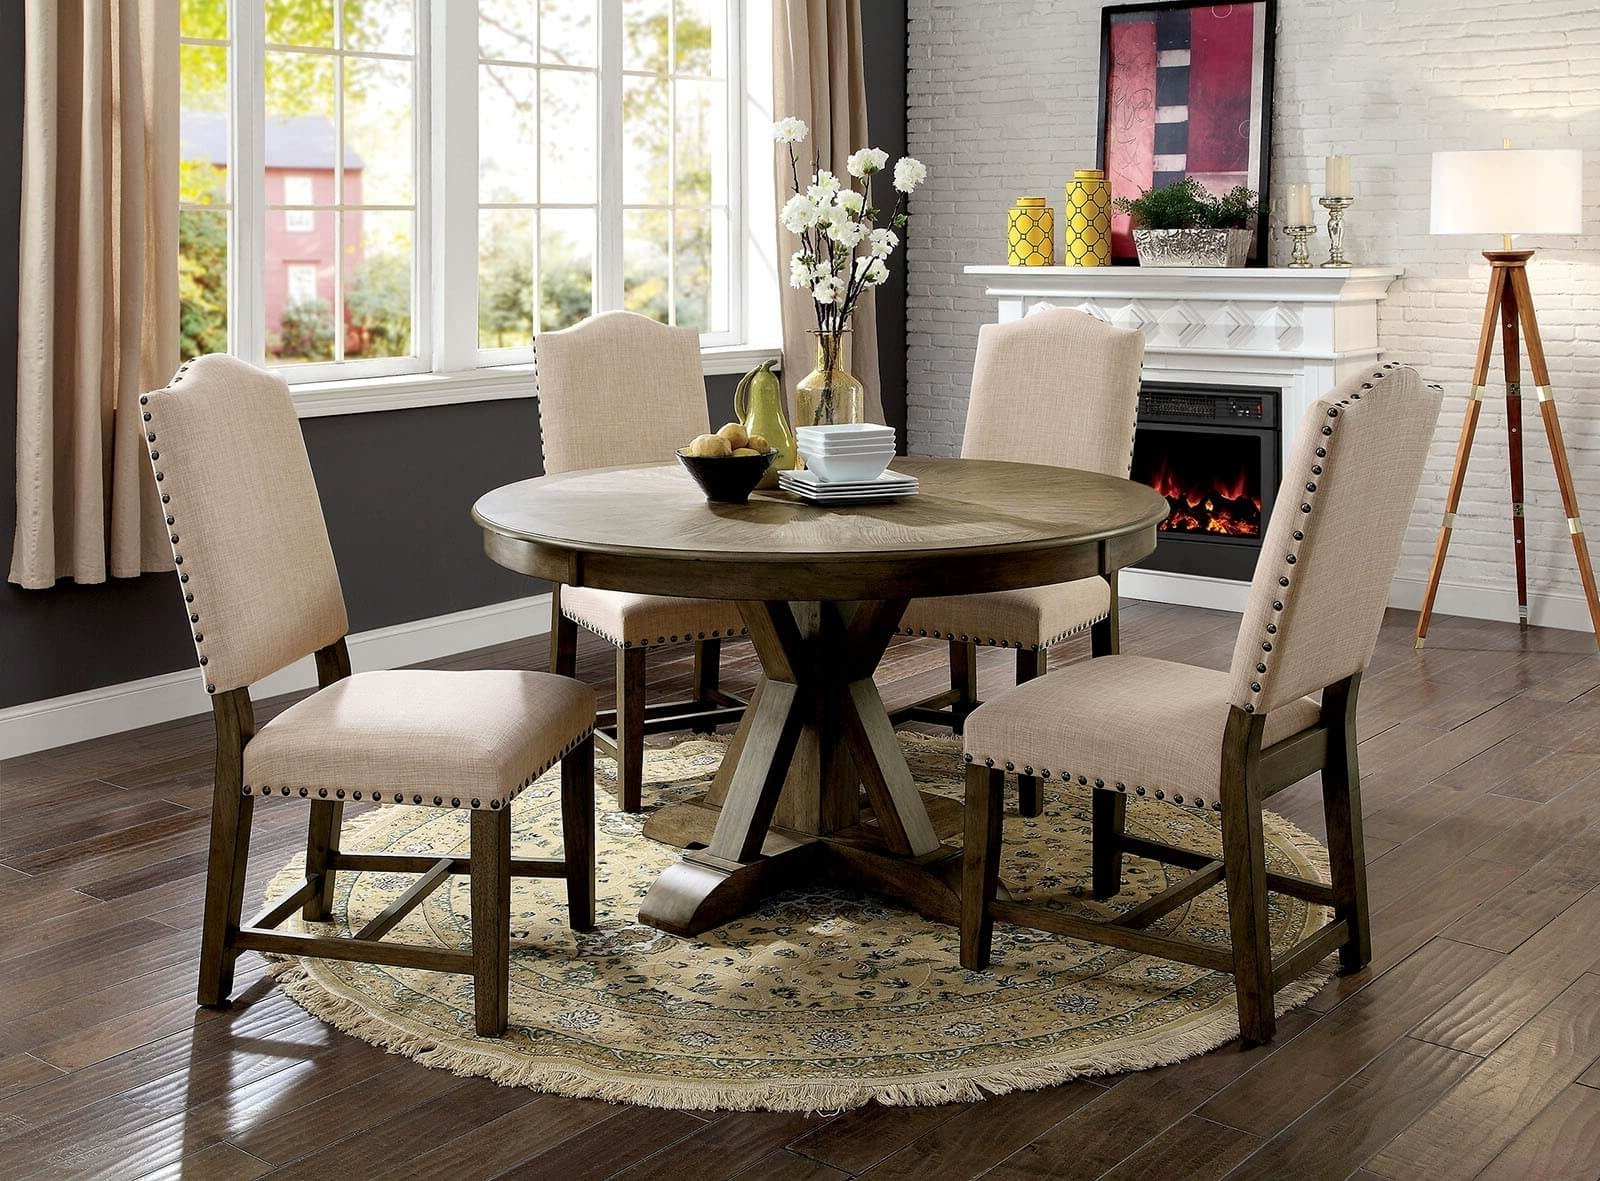 5 Piece Julia Round Dining Set Light Oak Finish - Usa Warehouse pertaining to Most Recently Released Valencia 5 Piece Round Dining Sets With Uph Seat Side Chairs